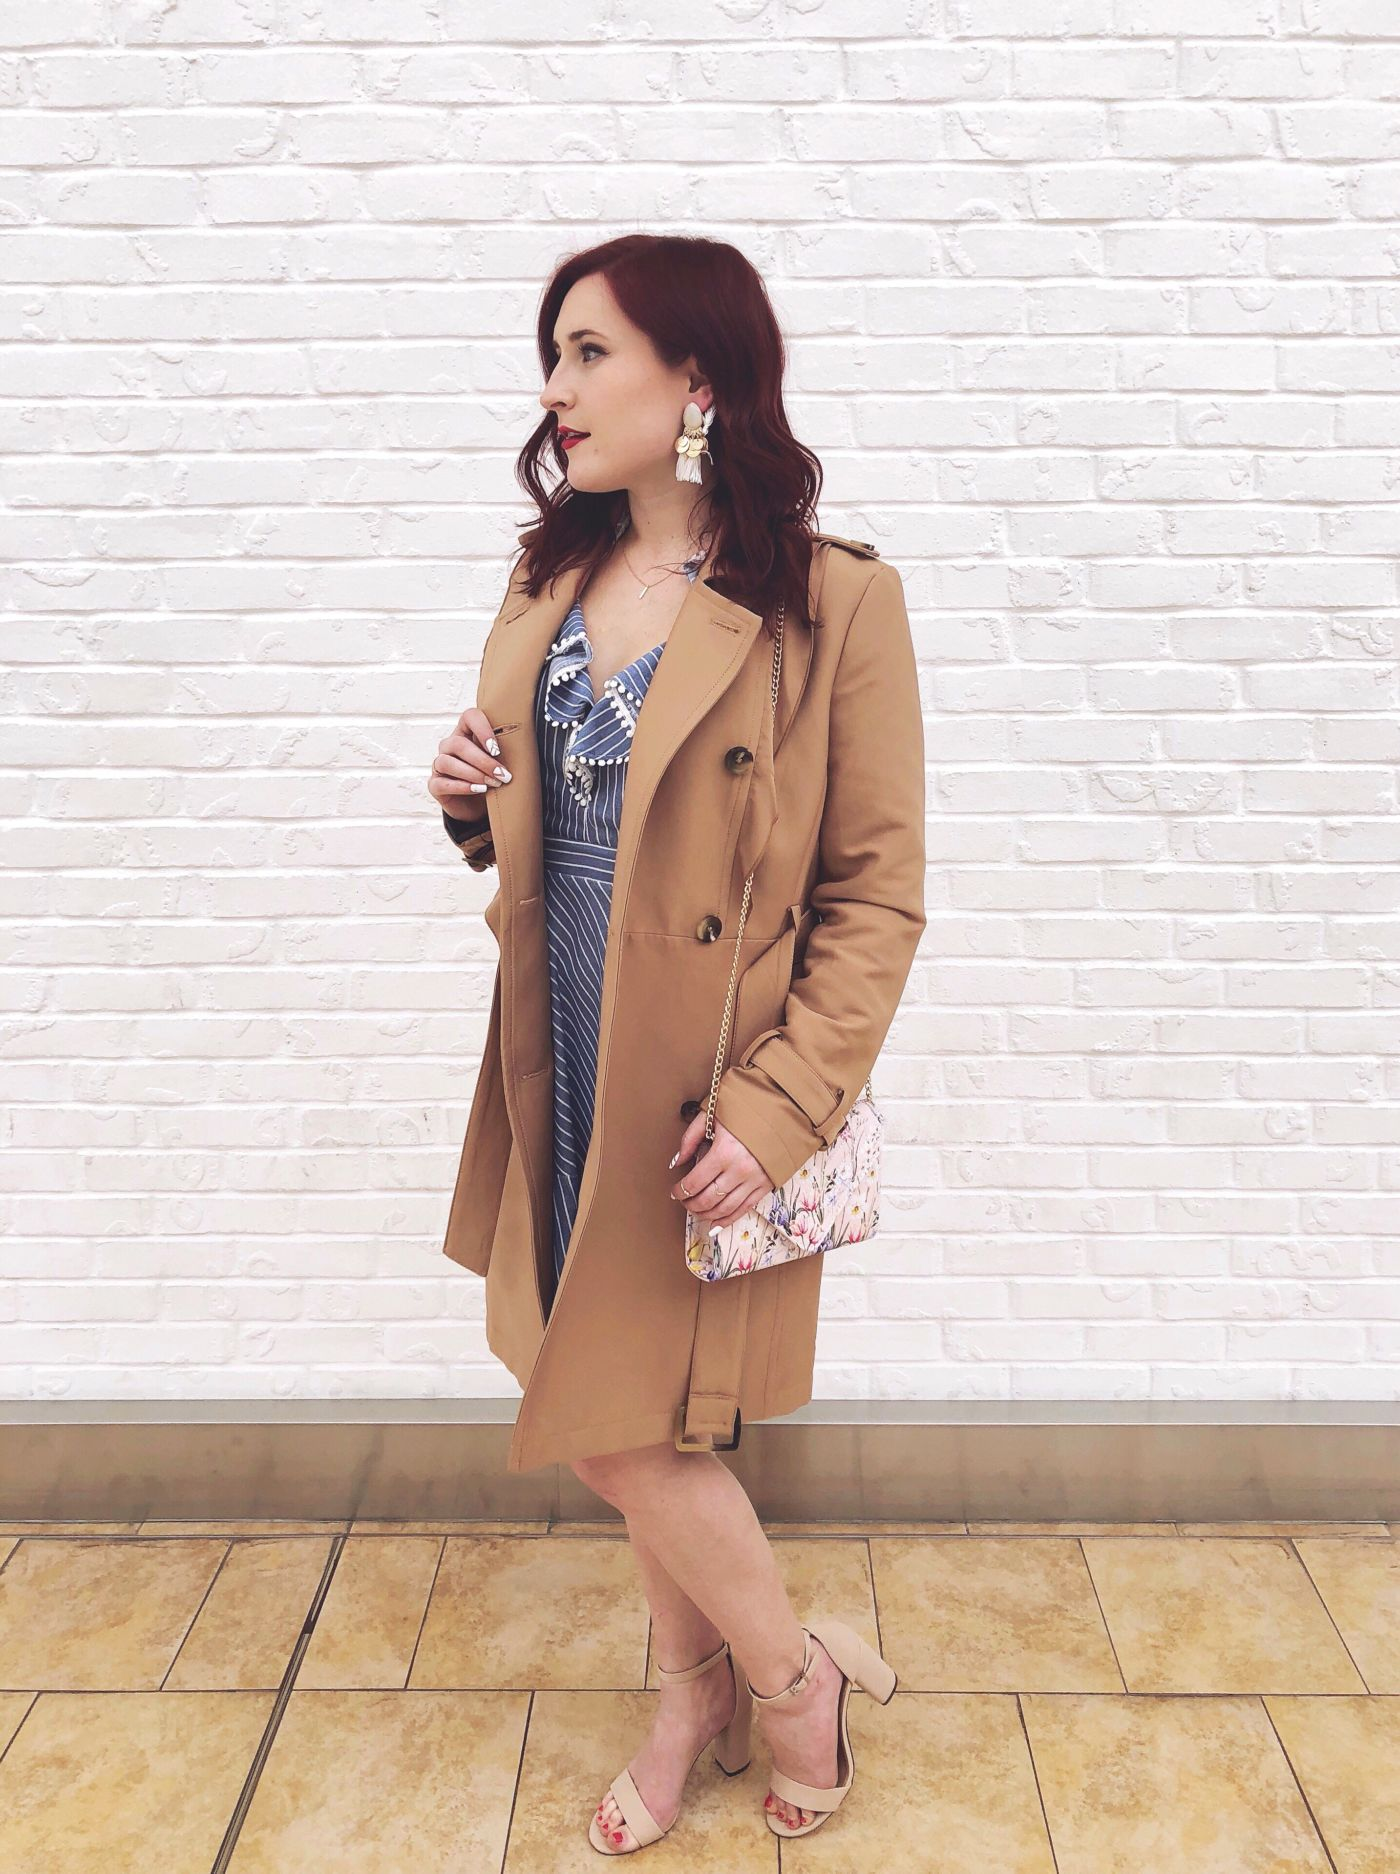 spring style, spring outfit, perfect spring outfit, bramalea city centre, bramalea city centre style pop, bcc style, bcc, toronto mall, toronto shopping, h&m, harlequin collection, call it spring, aldo, rw&co trench coat, forever 21, nike sneakers, famous footwear